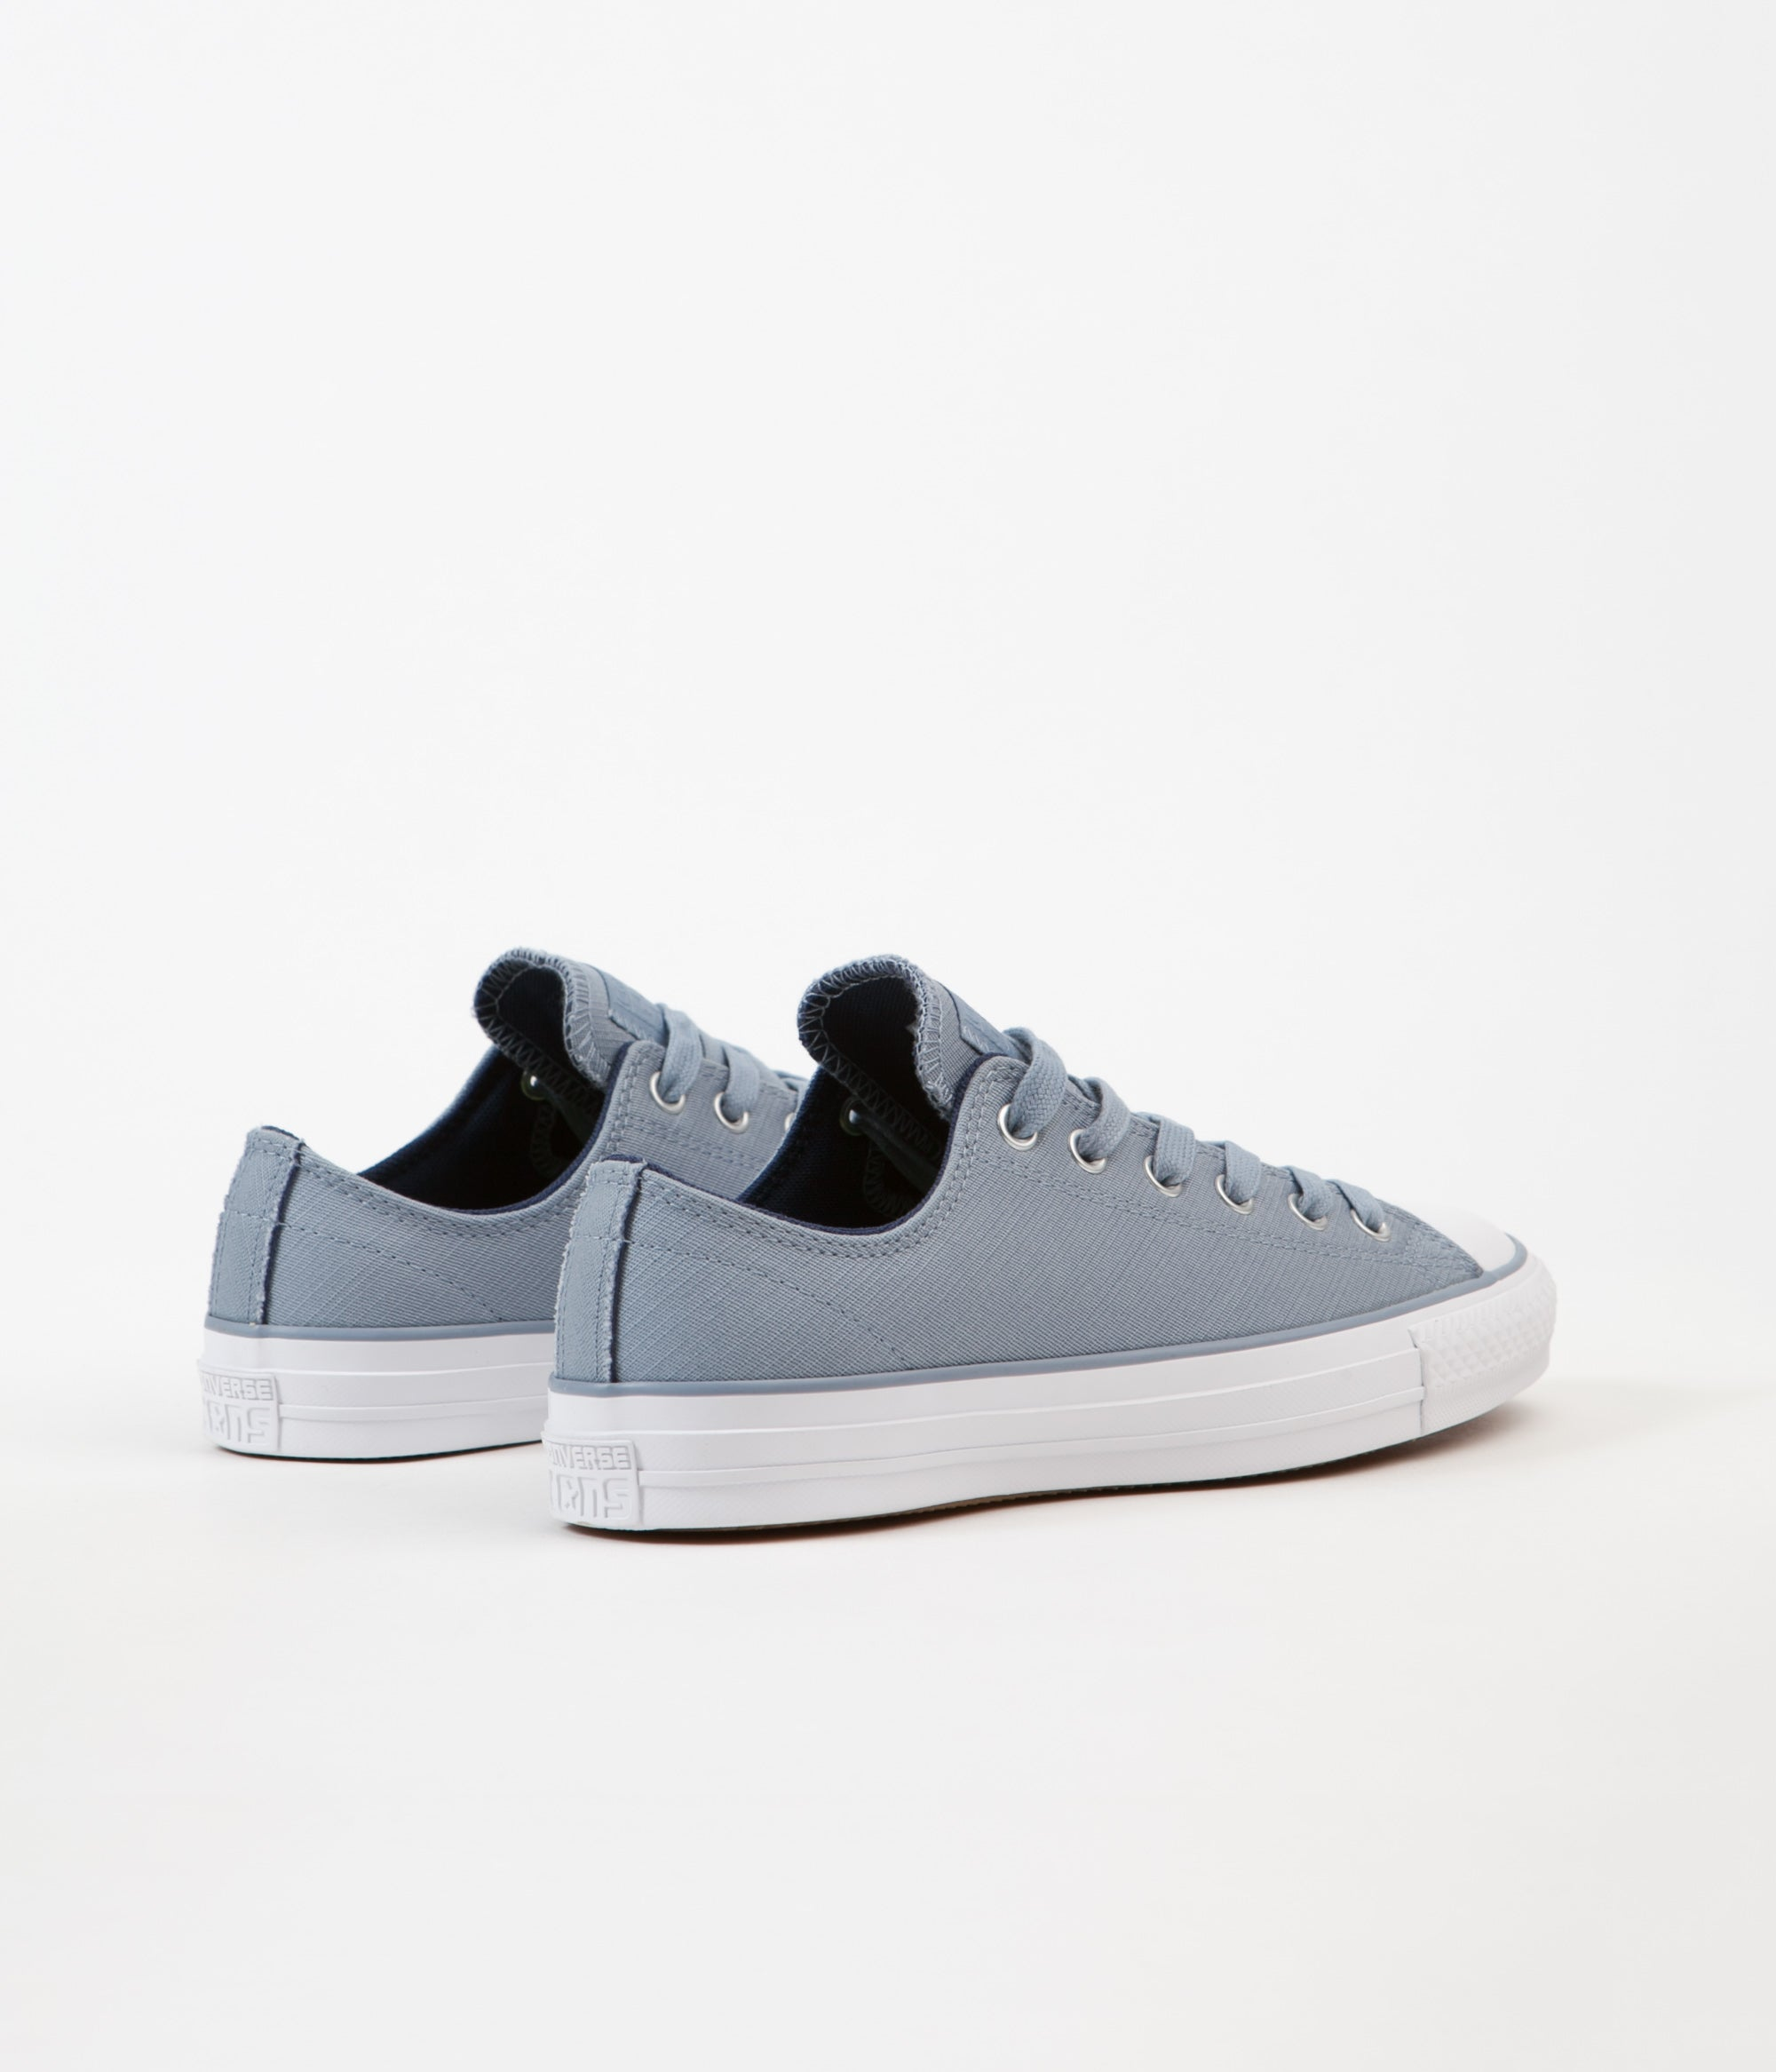 ac2a4d9bbbc6 ... Converse CTAS Pro OX Shoes - Blue Slate   Midnight Navy ...